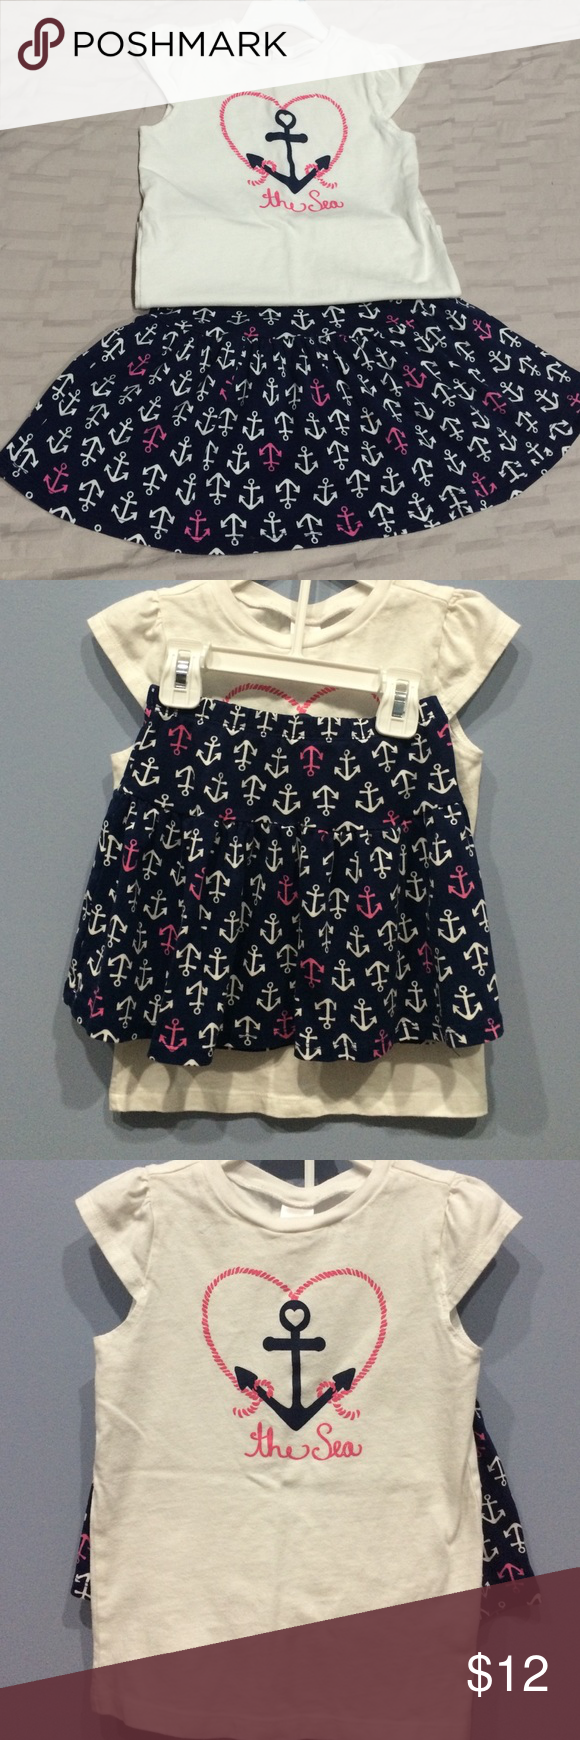 Girls Skirt Outfit Adorable girls nautical anchor skirt outfit. Top is white with cap sleeves and skirt is navy blue with pink and white anchors. It's been worn a few times, good condition! Gymboree Bottoms Skirts